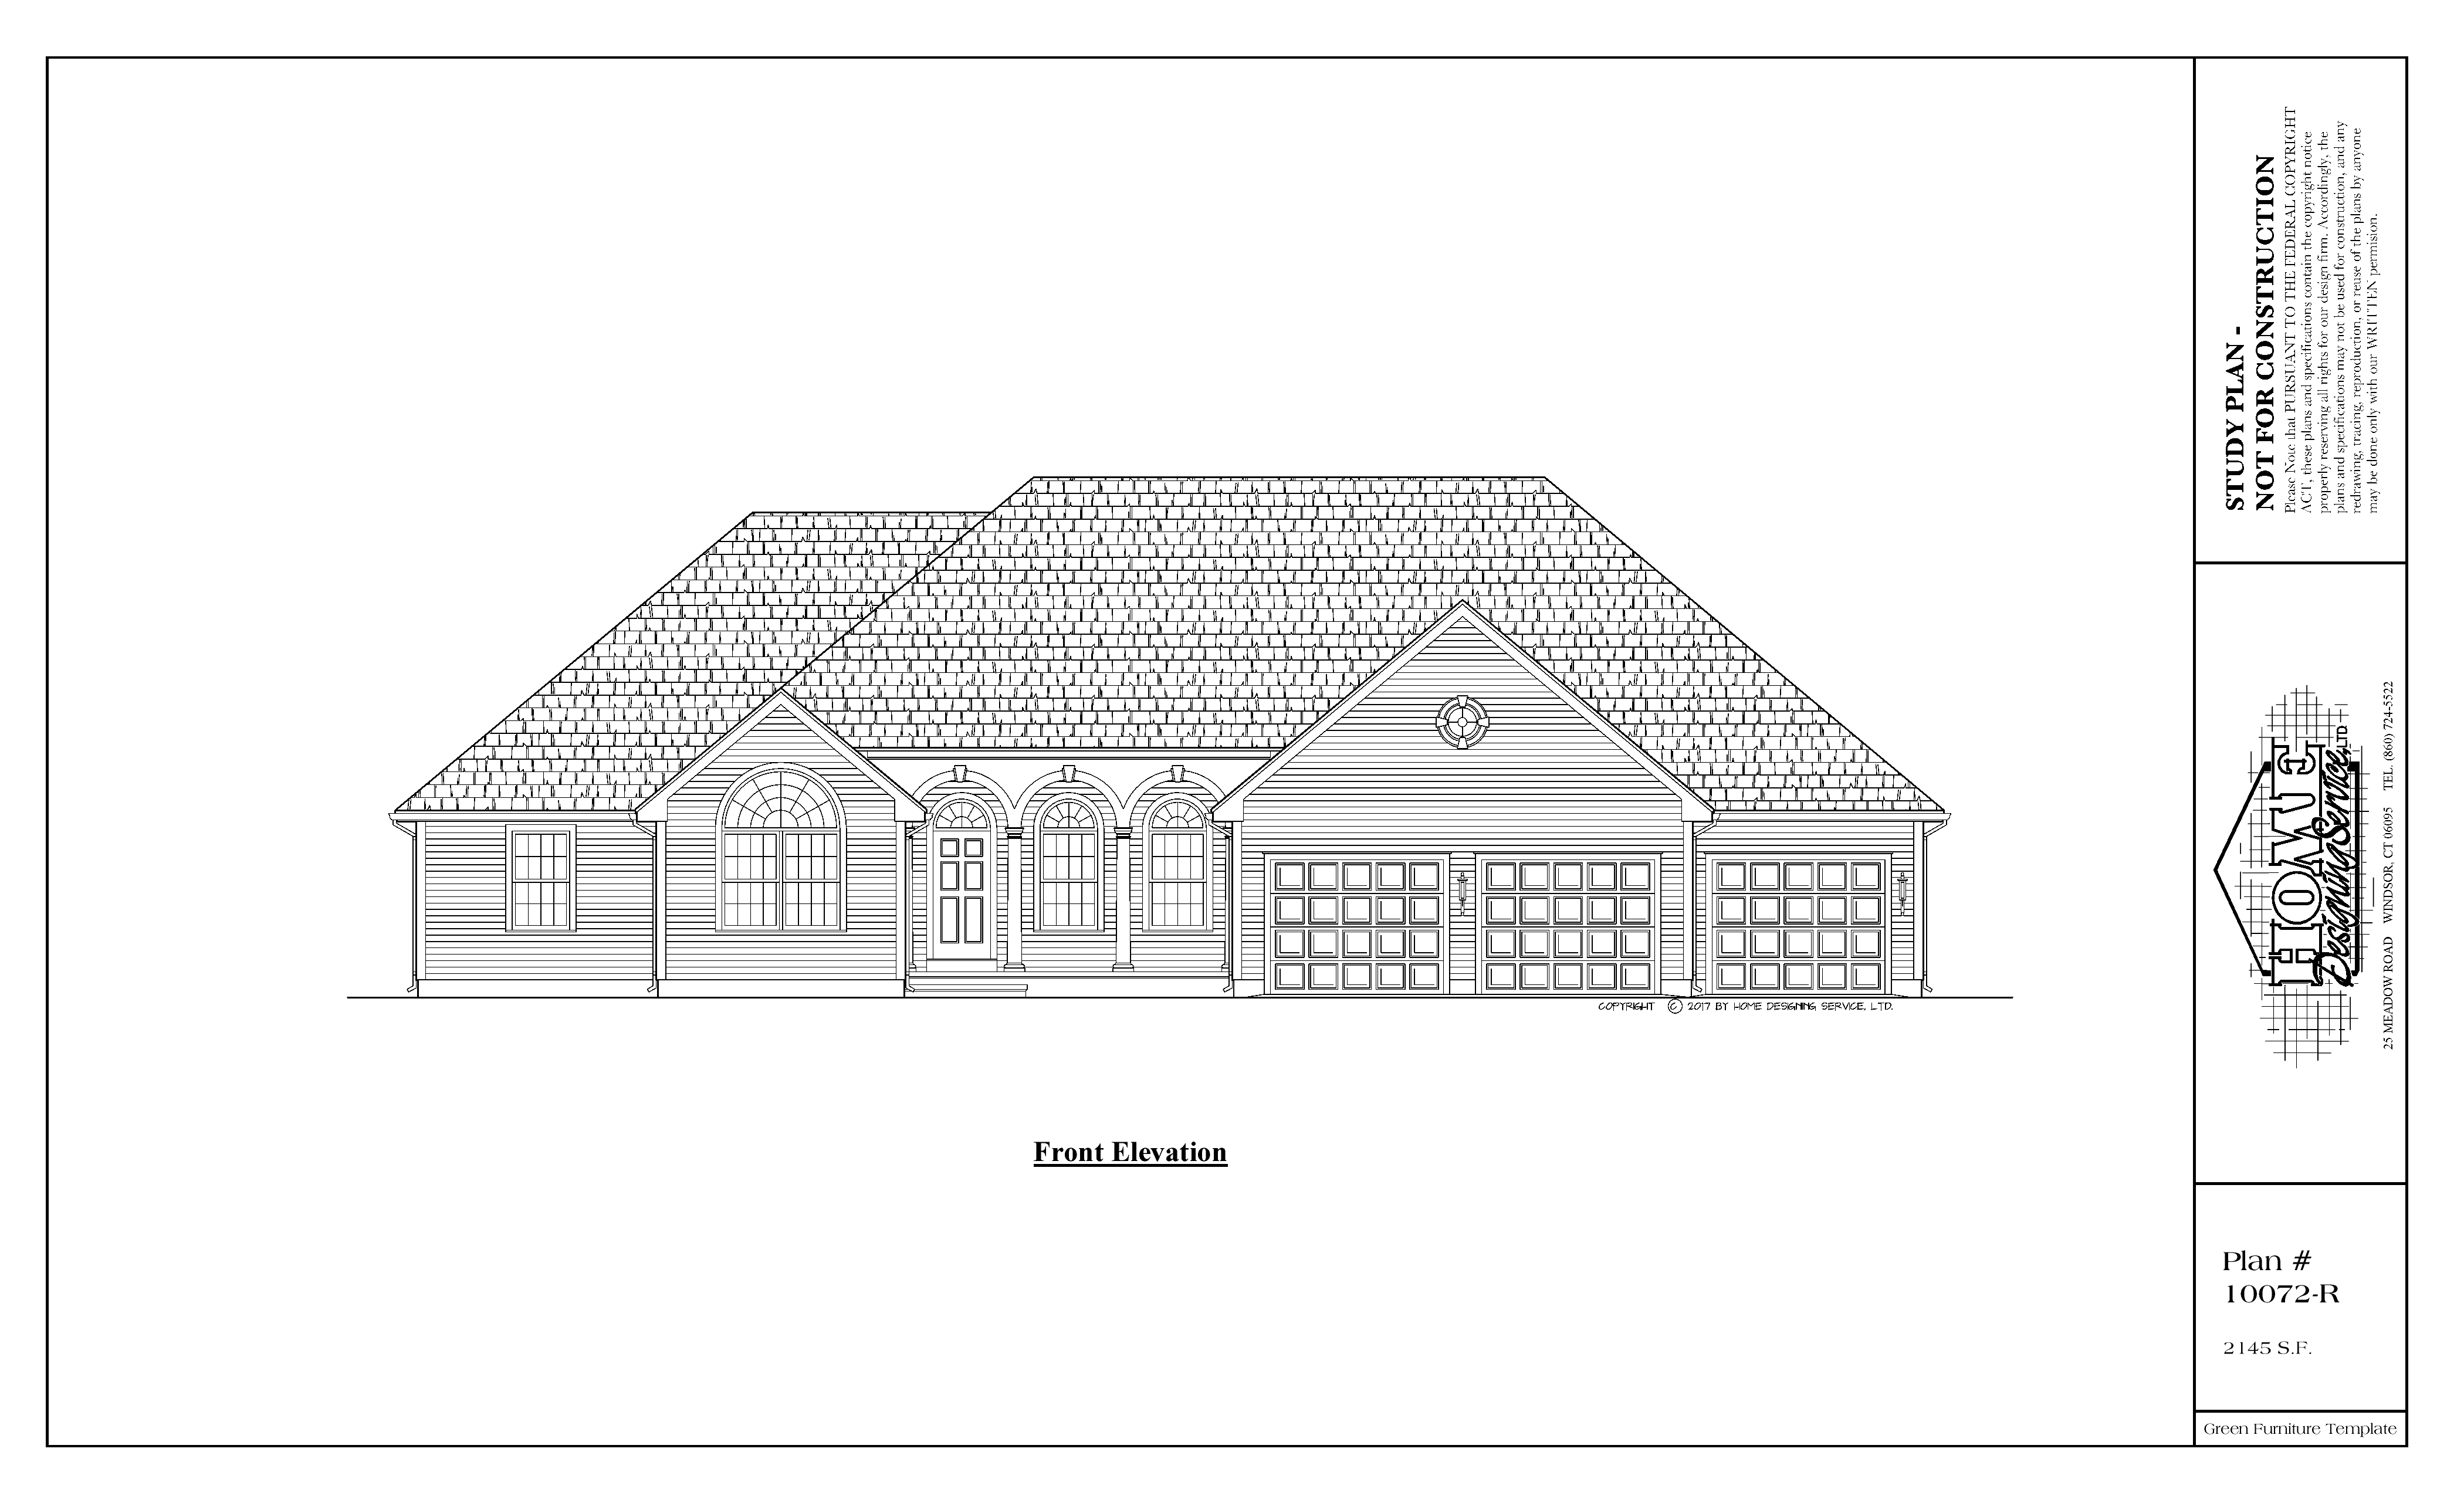 Ranch House Plan 10072-R - Home Designing Service Ltd. on